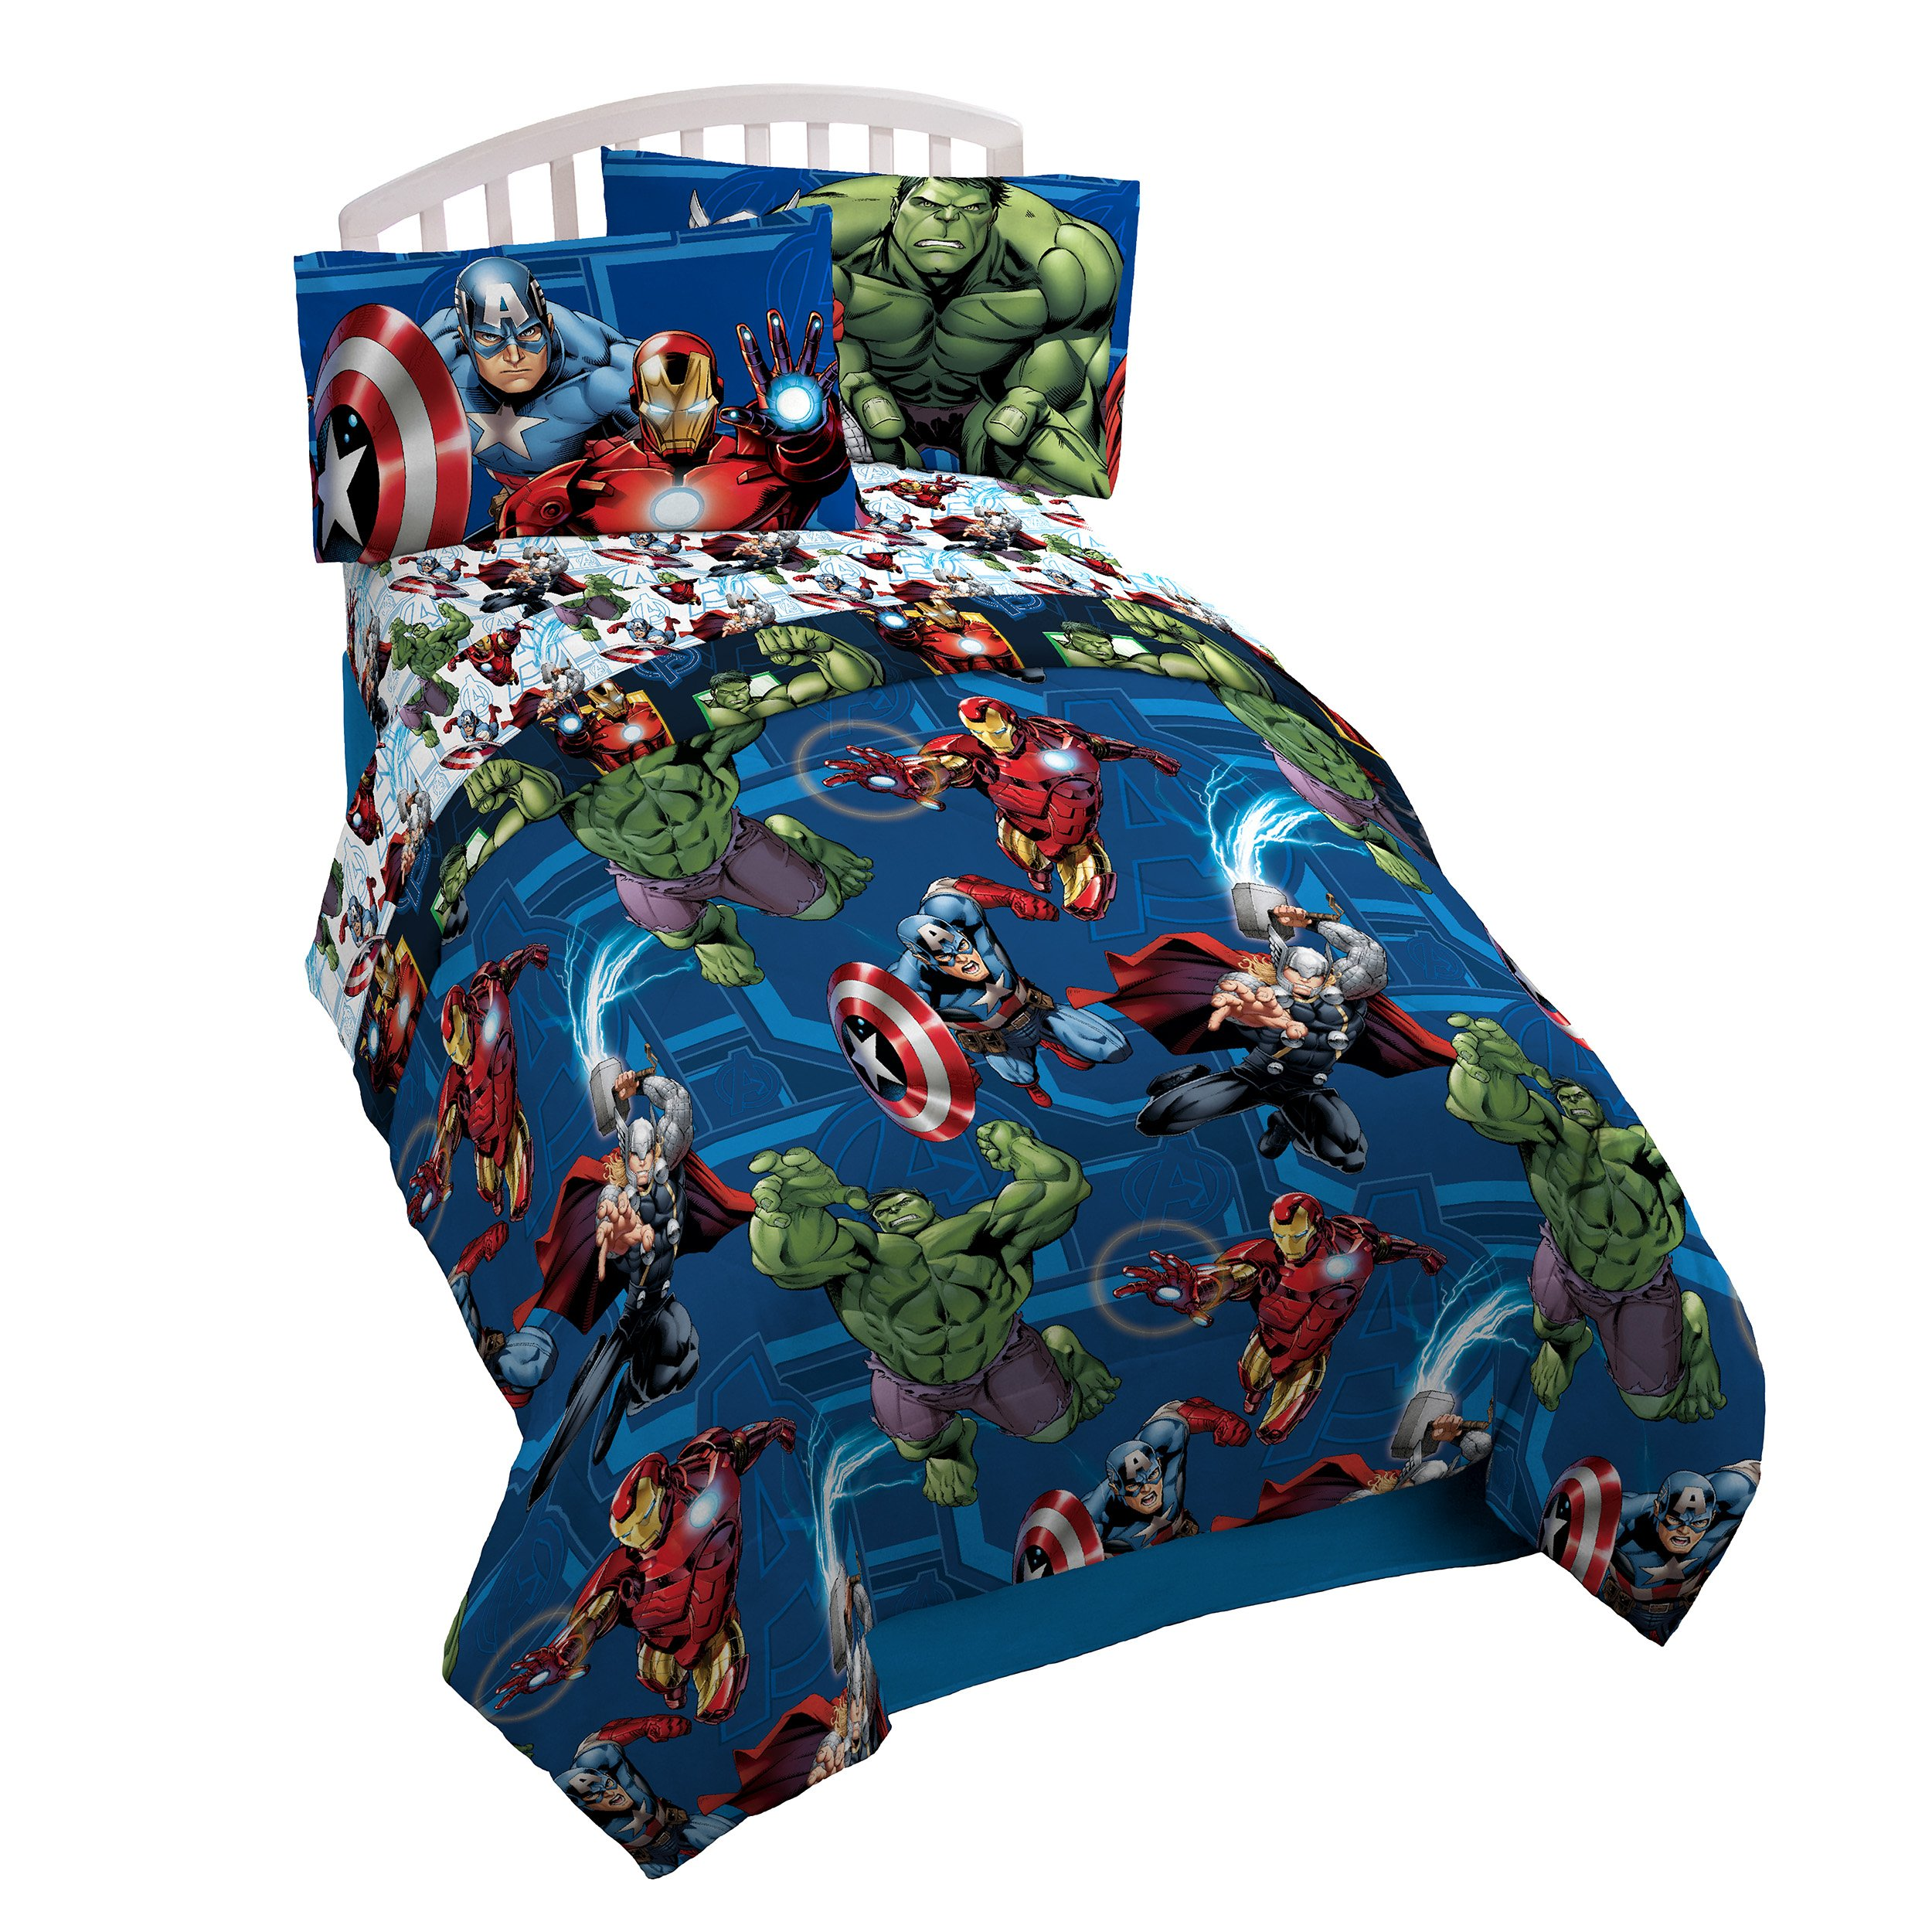 Marvel Avengers Heroic Age Twin Comforter - Super Soft Kids Reversible Bedding features Iron Man, Hulk, Captain America, and Thor - Fade Resistant Polyester Microfiber Fill (Official Marvel Product)